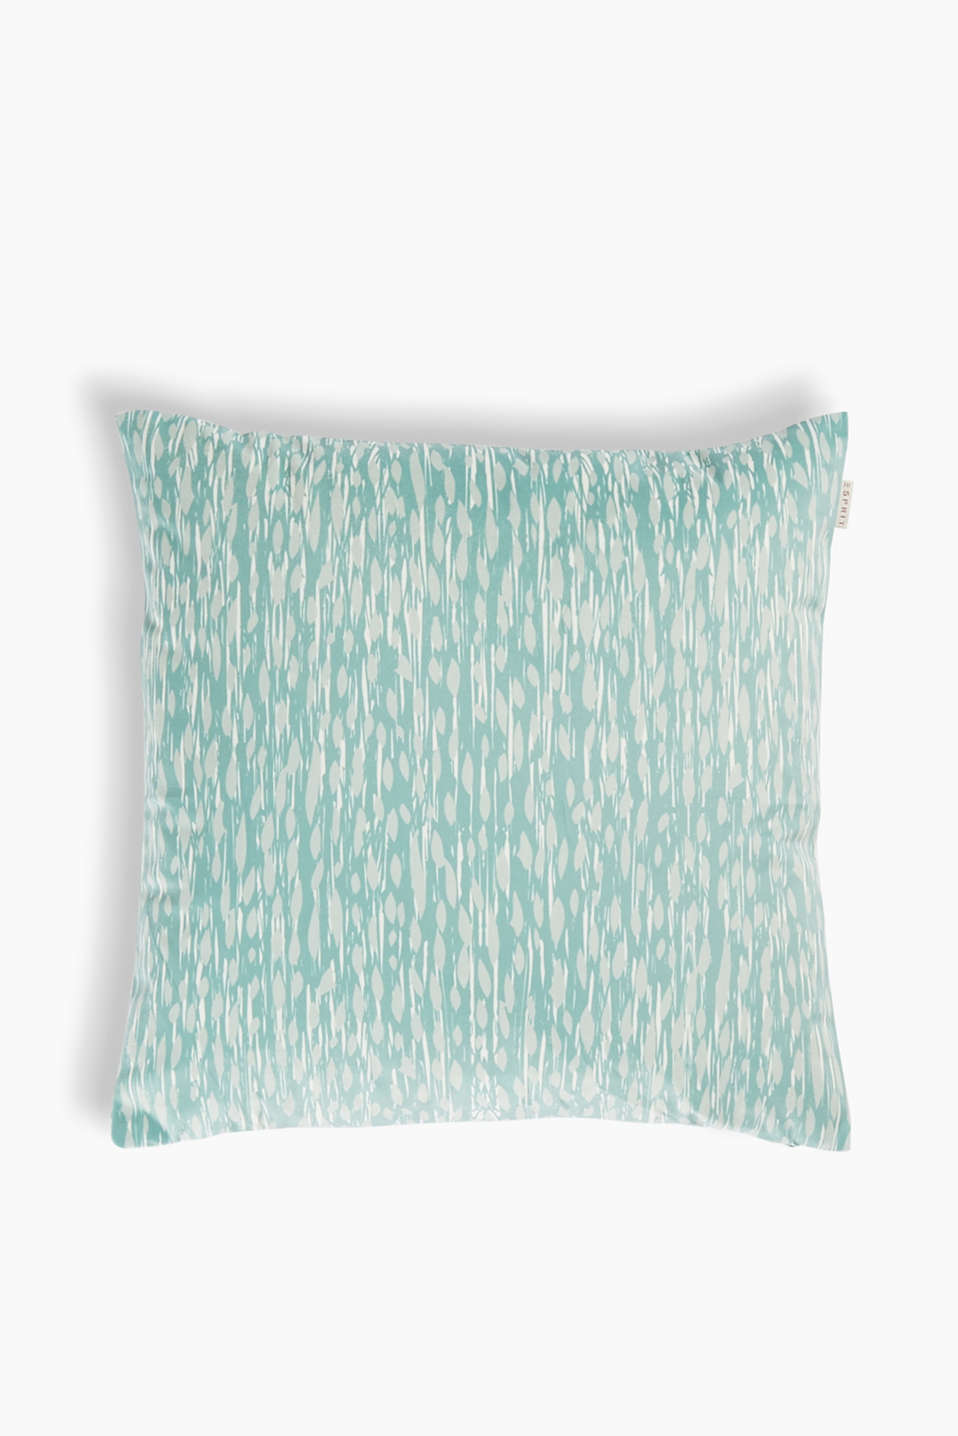 With a modern pattern: cushion cover with a digital print, made of premium micro velvet